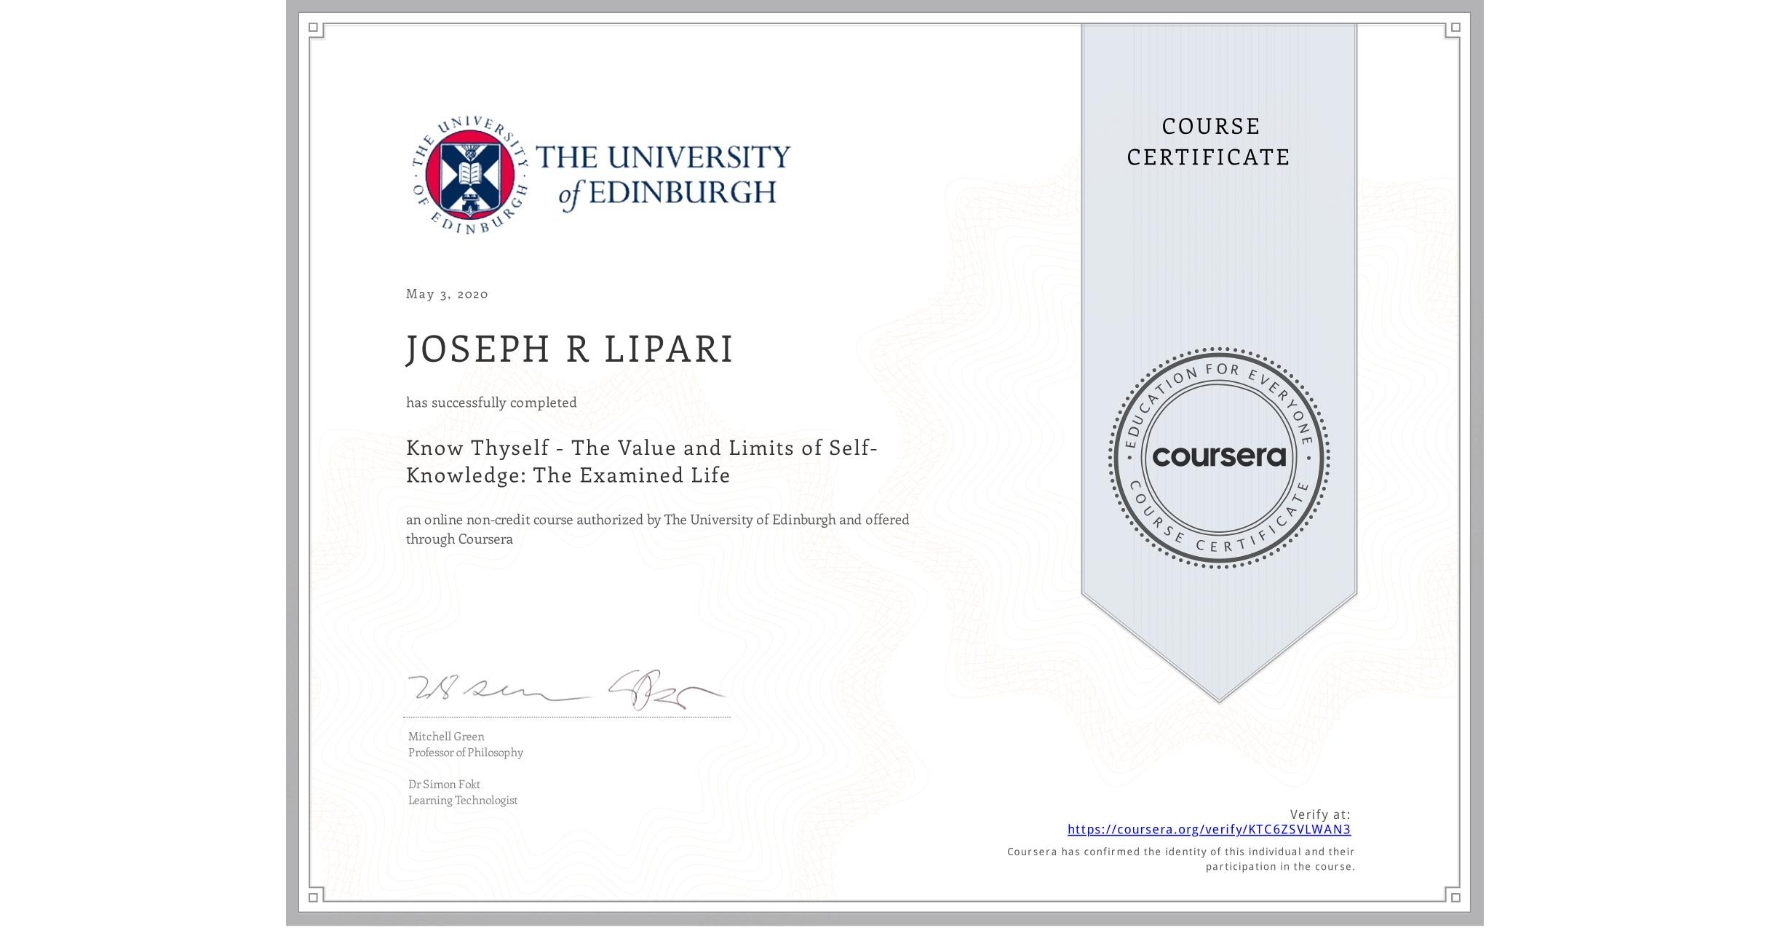 View certificate for JOSEPH R  LIPARI,  Know Thyself - The Value and Limits of Self-Knowledge: The Examined Life, an online non-credit course authorized by The University of Edinburgh and offered through Coursera